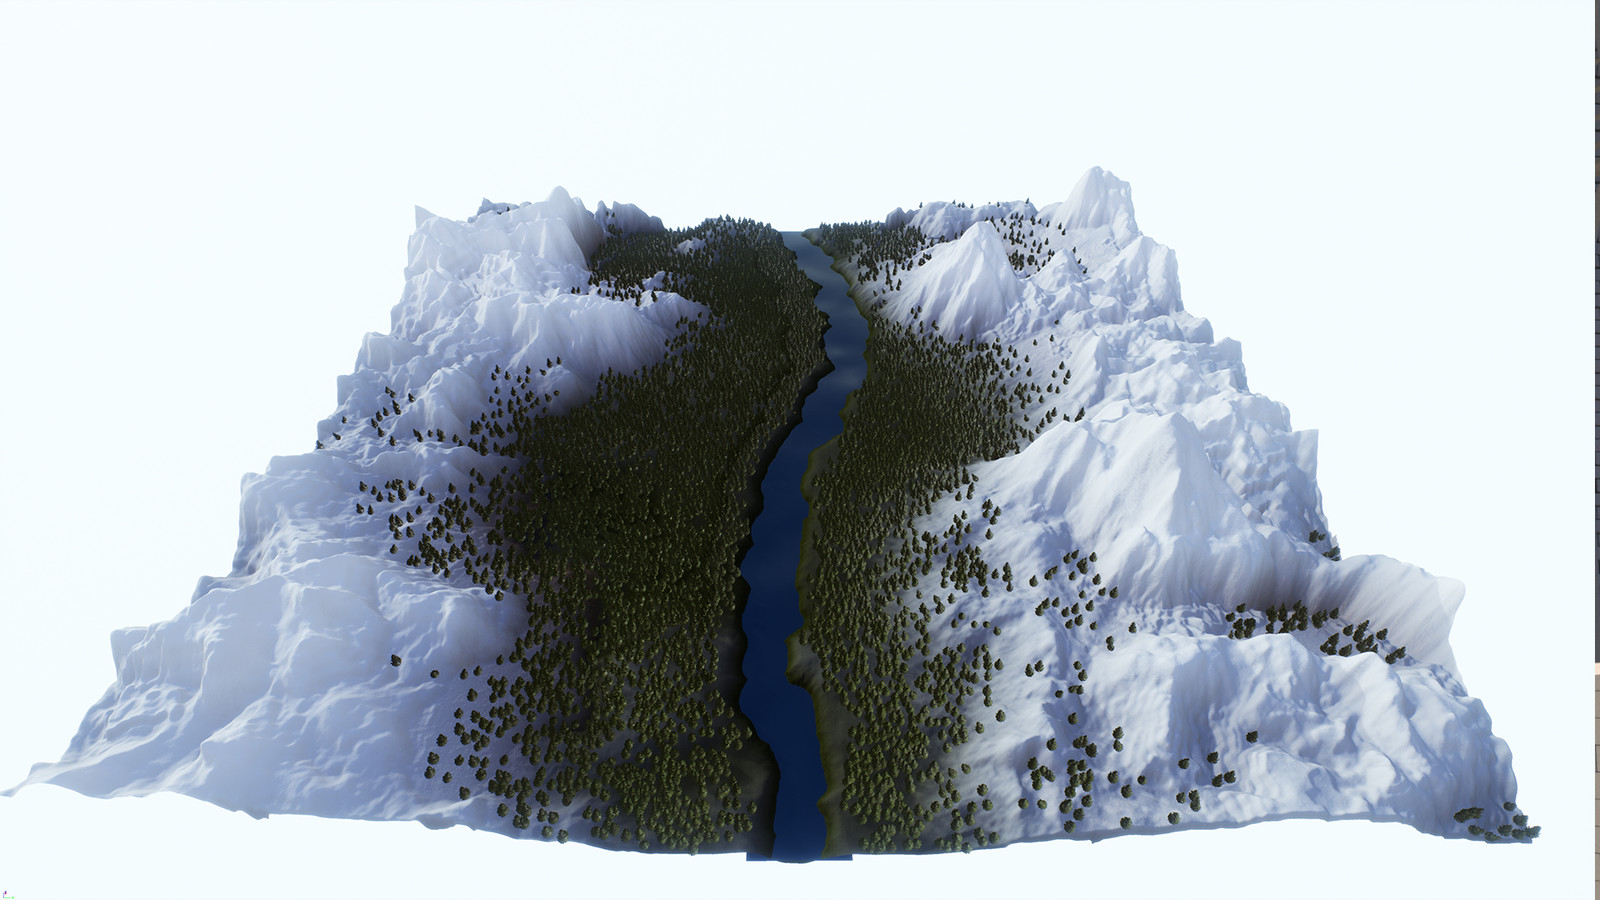 The overview of the second terrain.